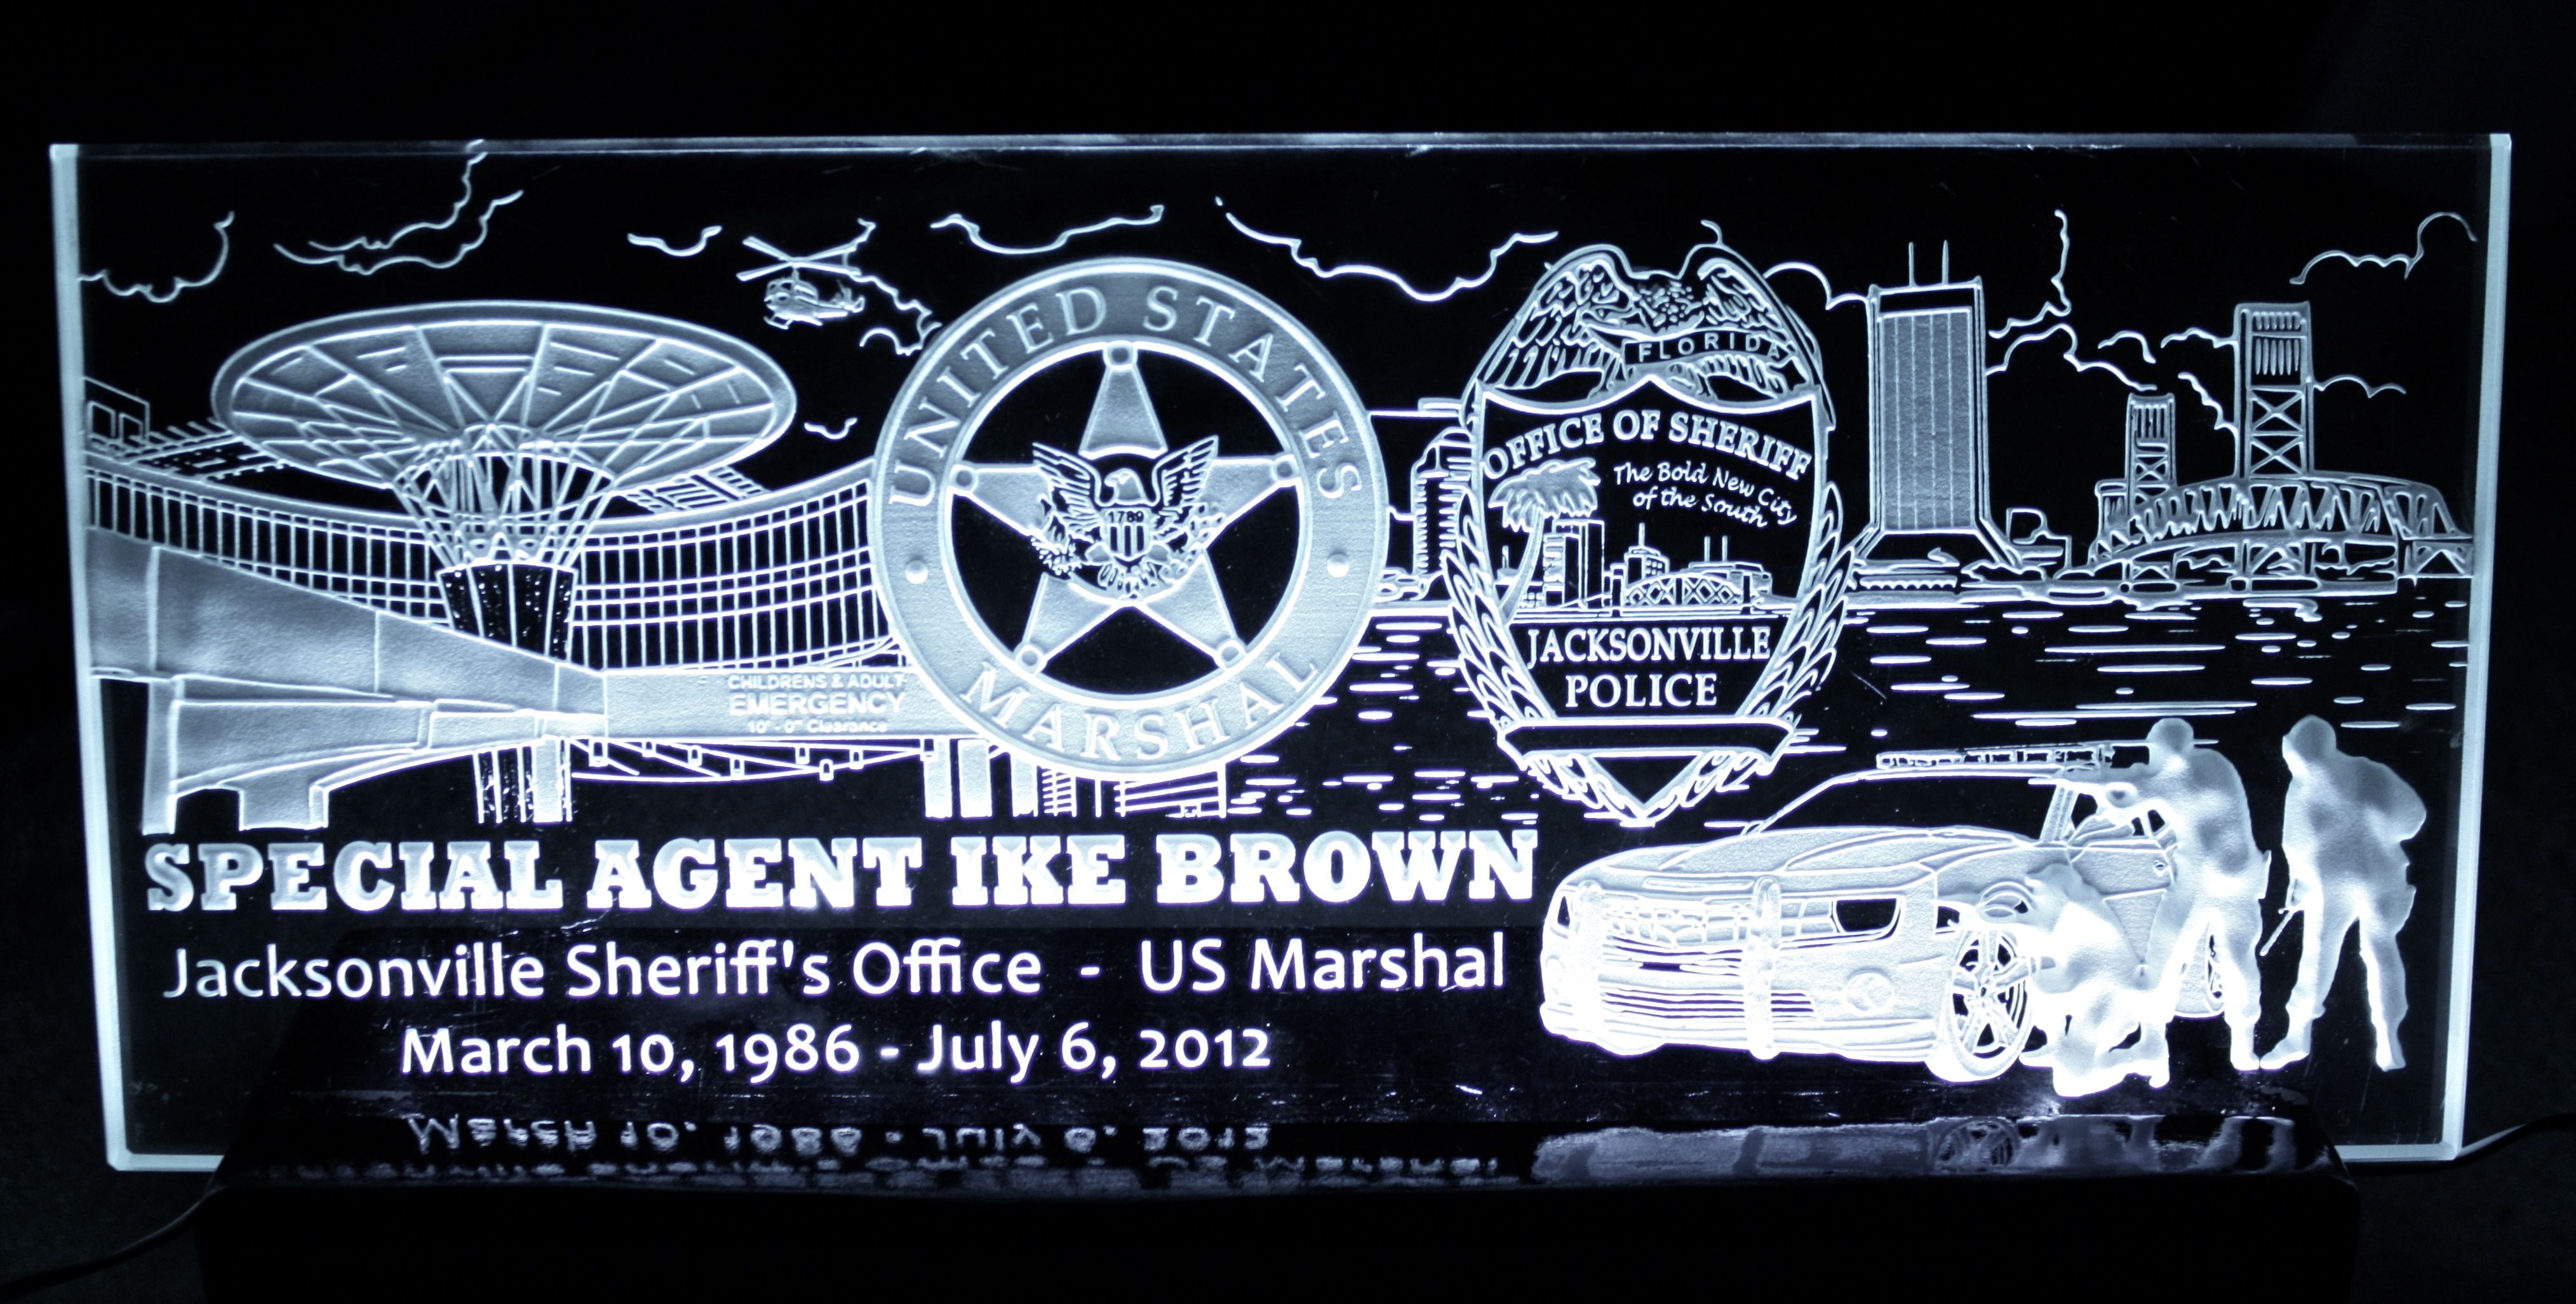 Law enforcement retirement gift for police officer brown